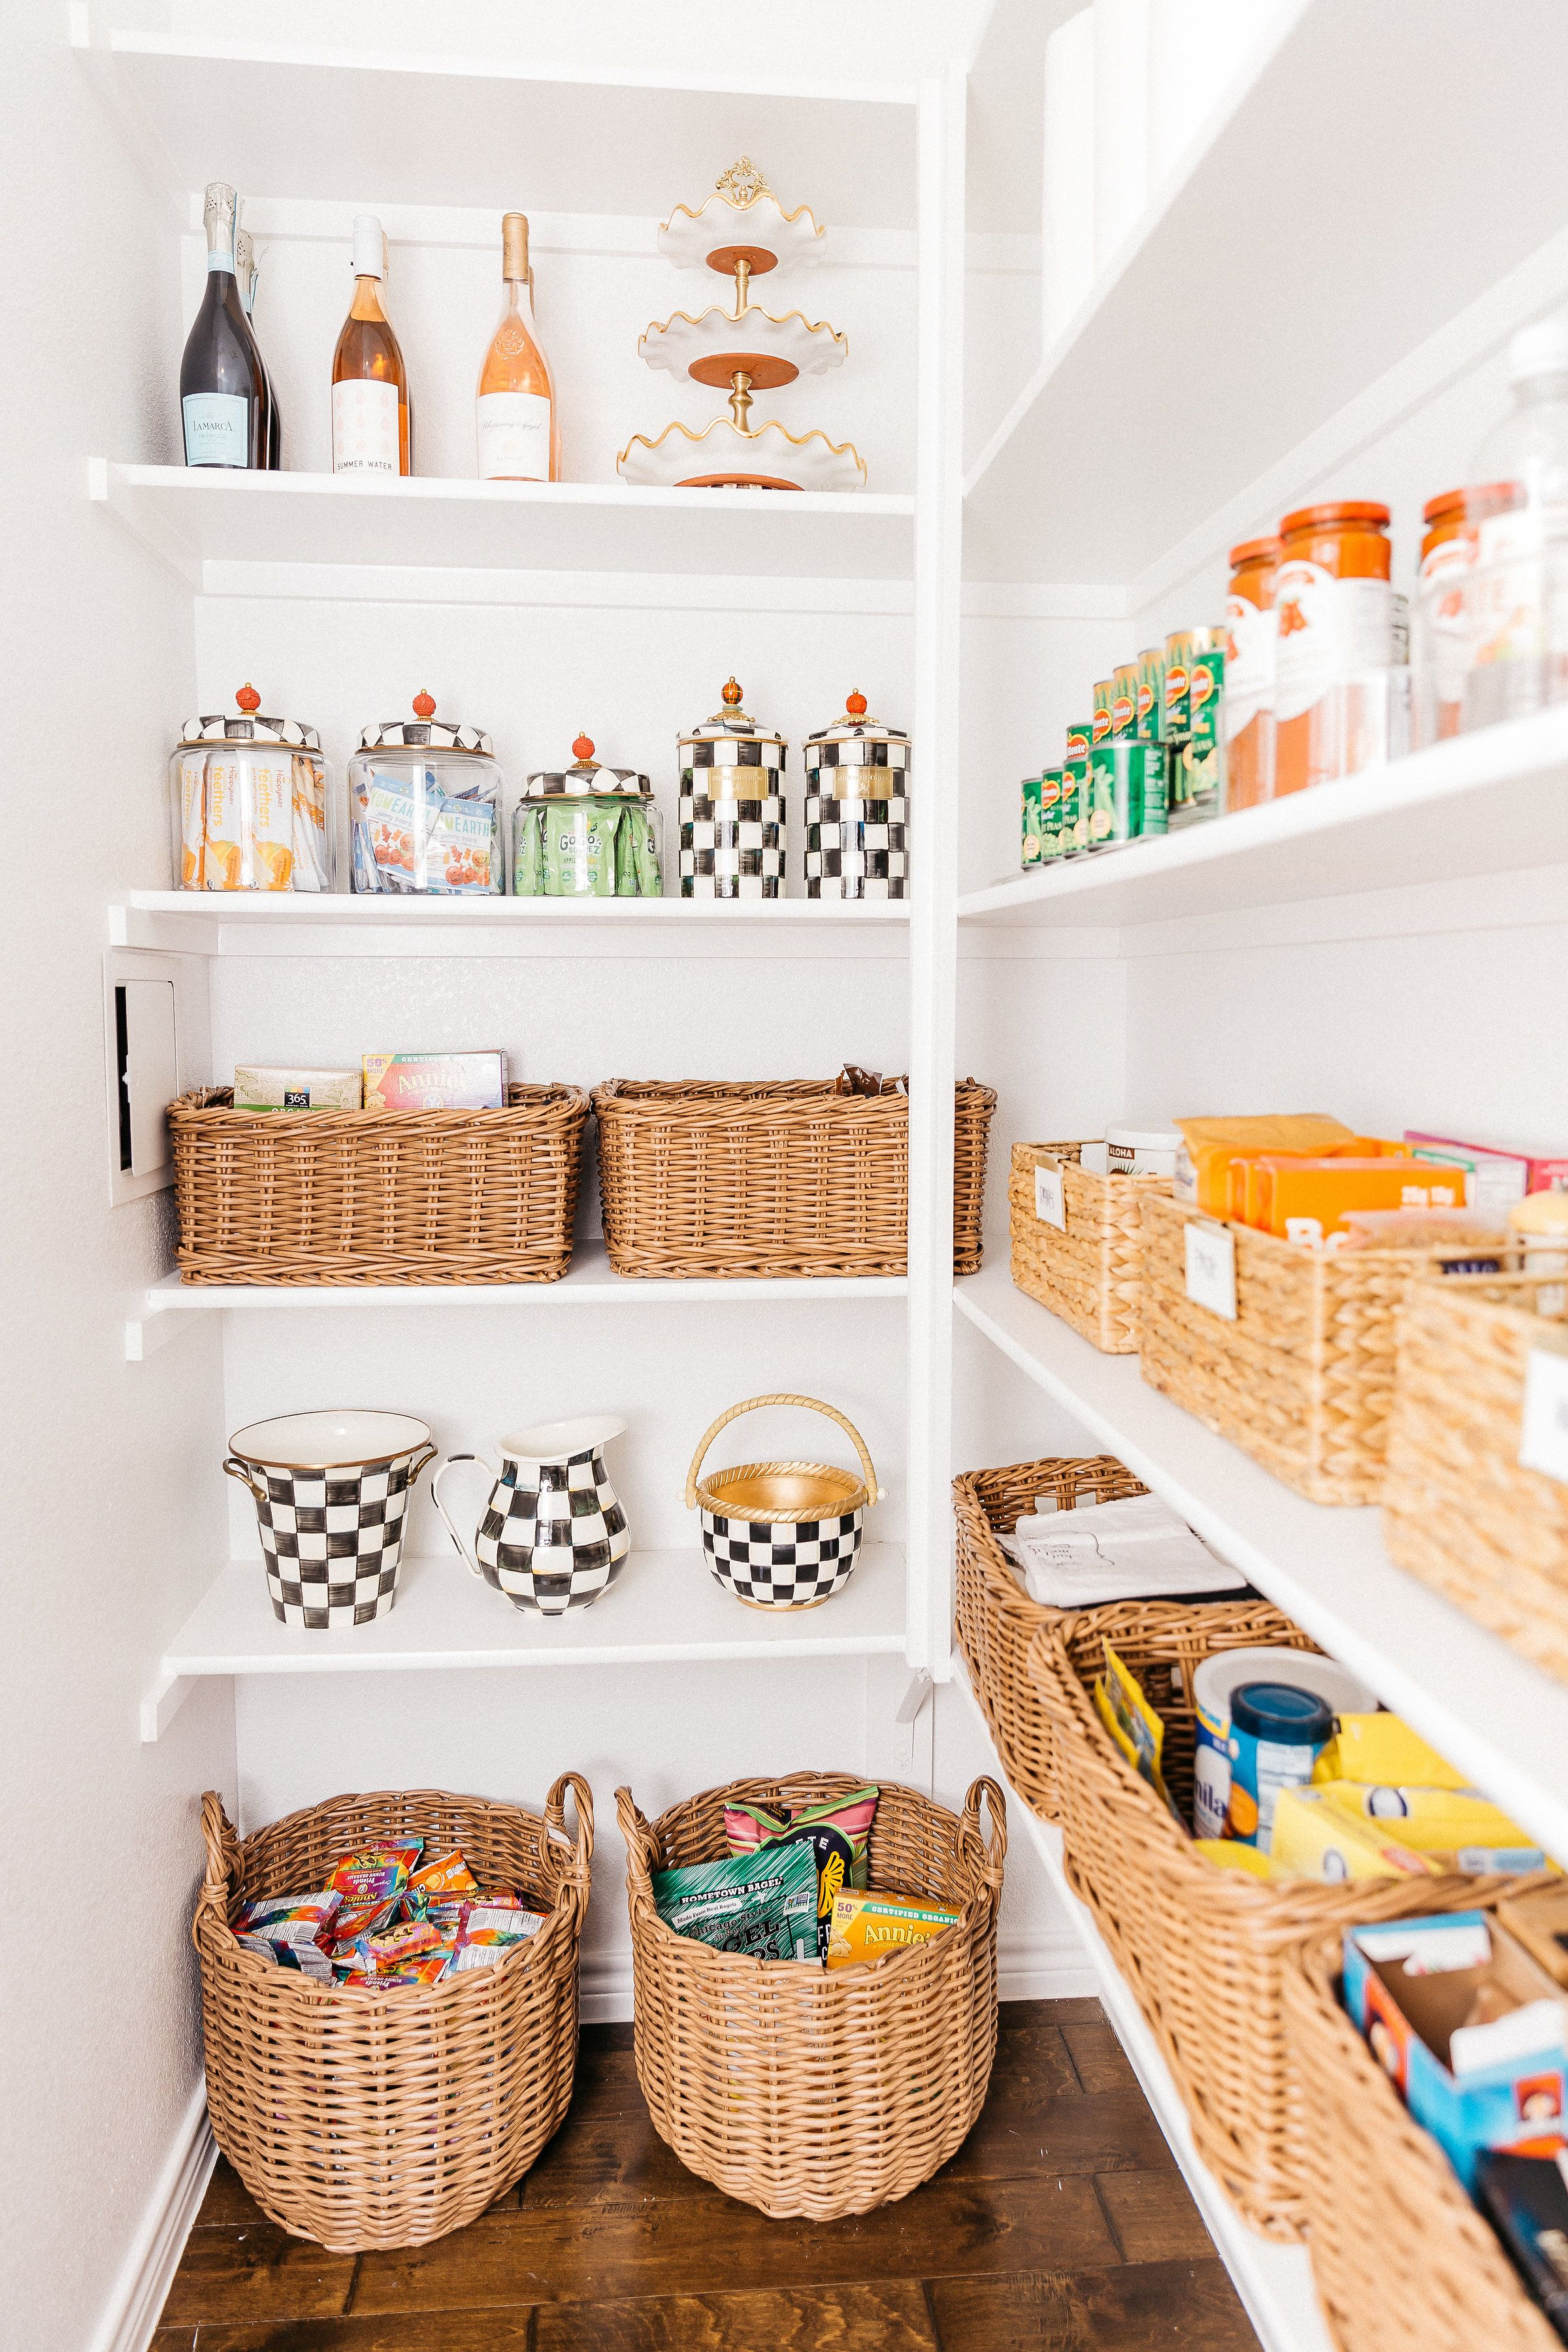 how to organize an l shaped pantry kitchen organization pantry kitchen decor l shaped pantry on kitchen decor organization id=77236